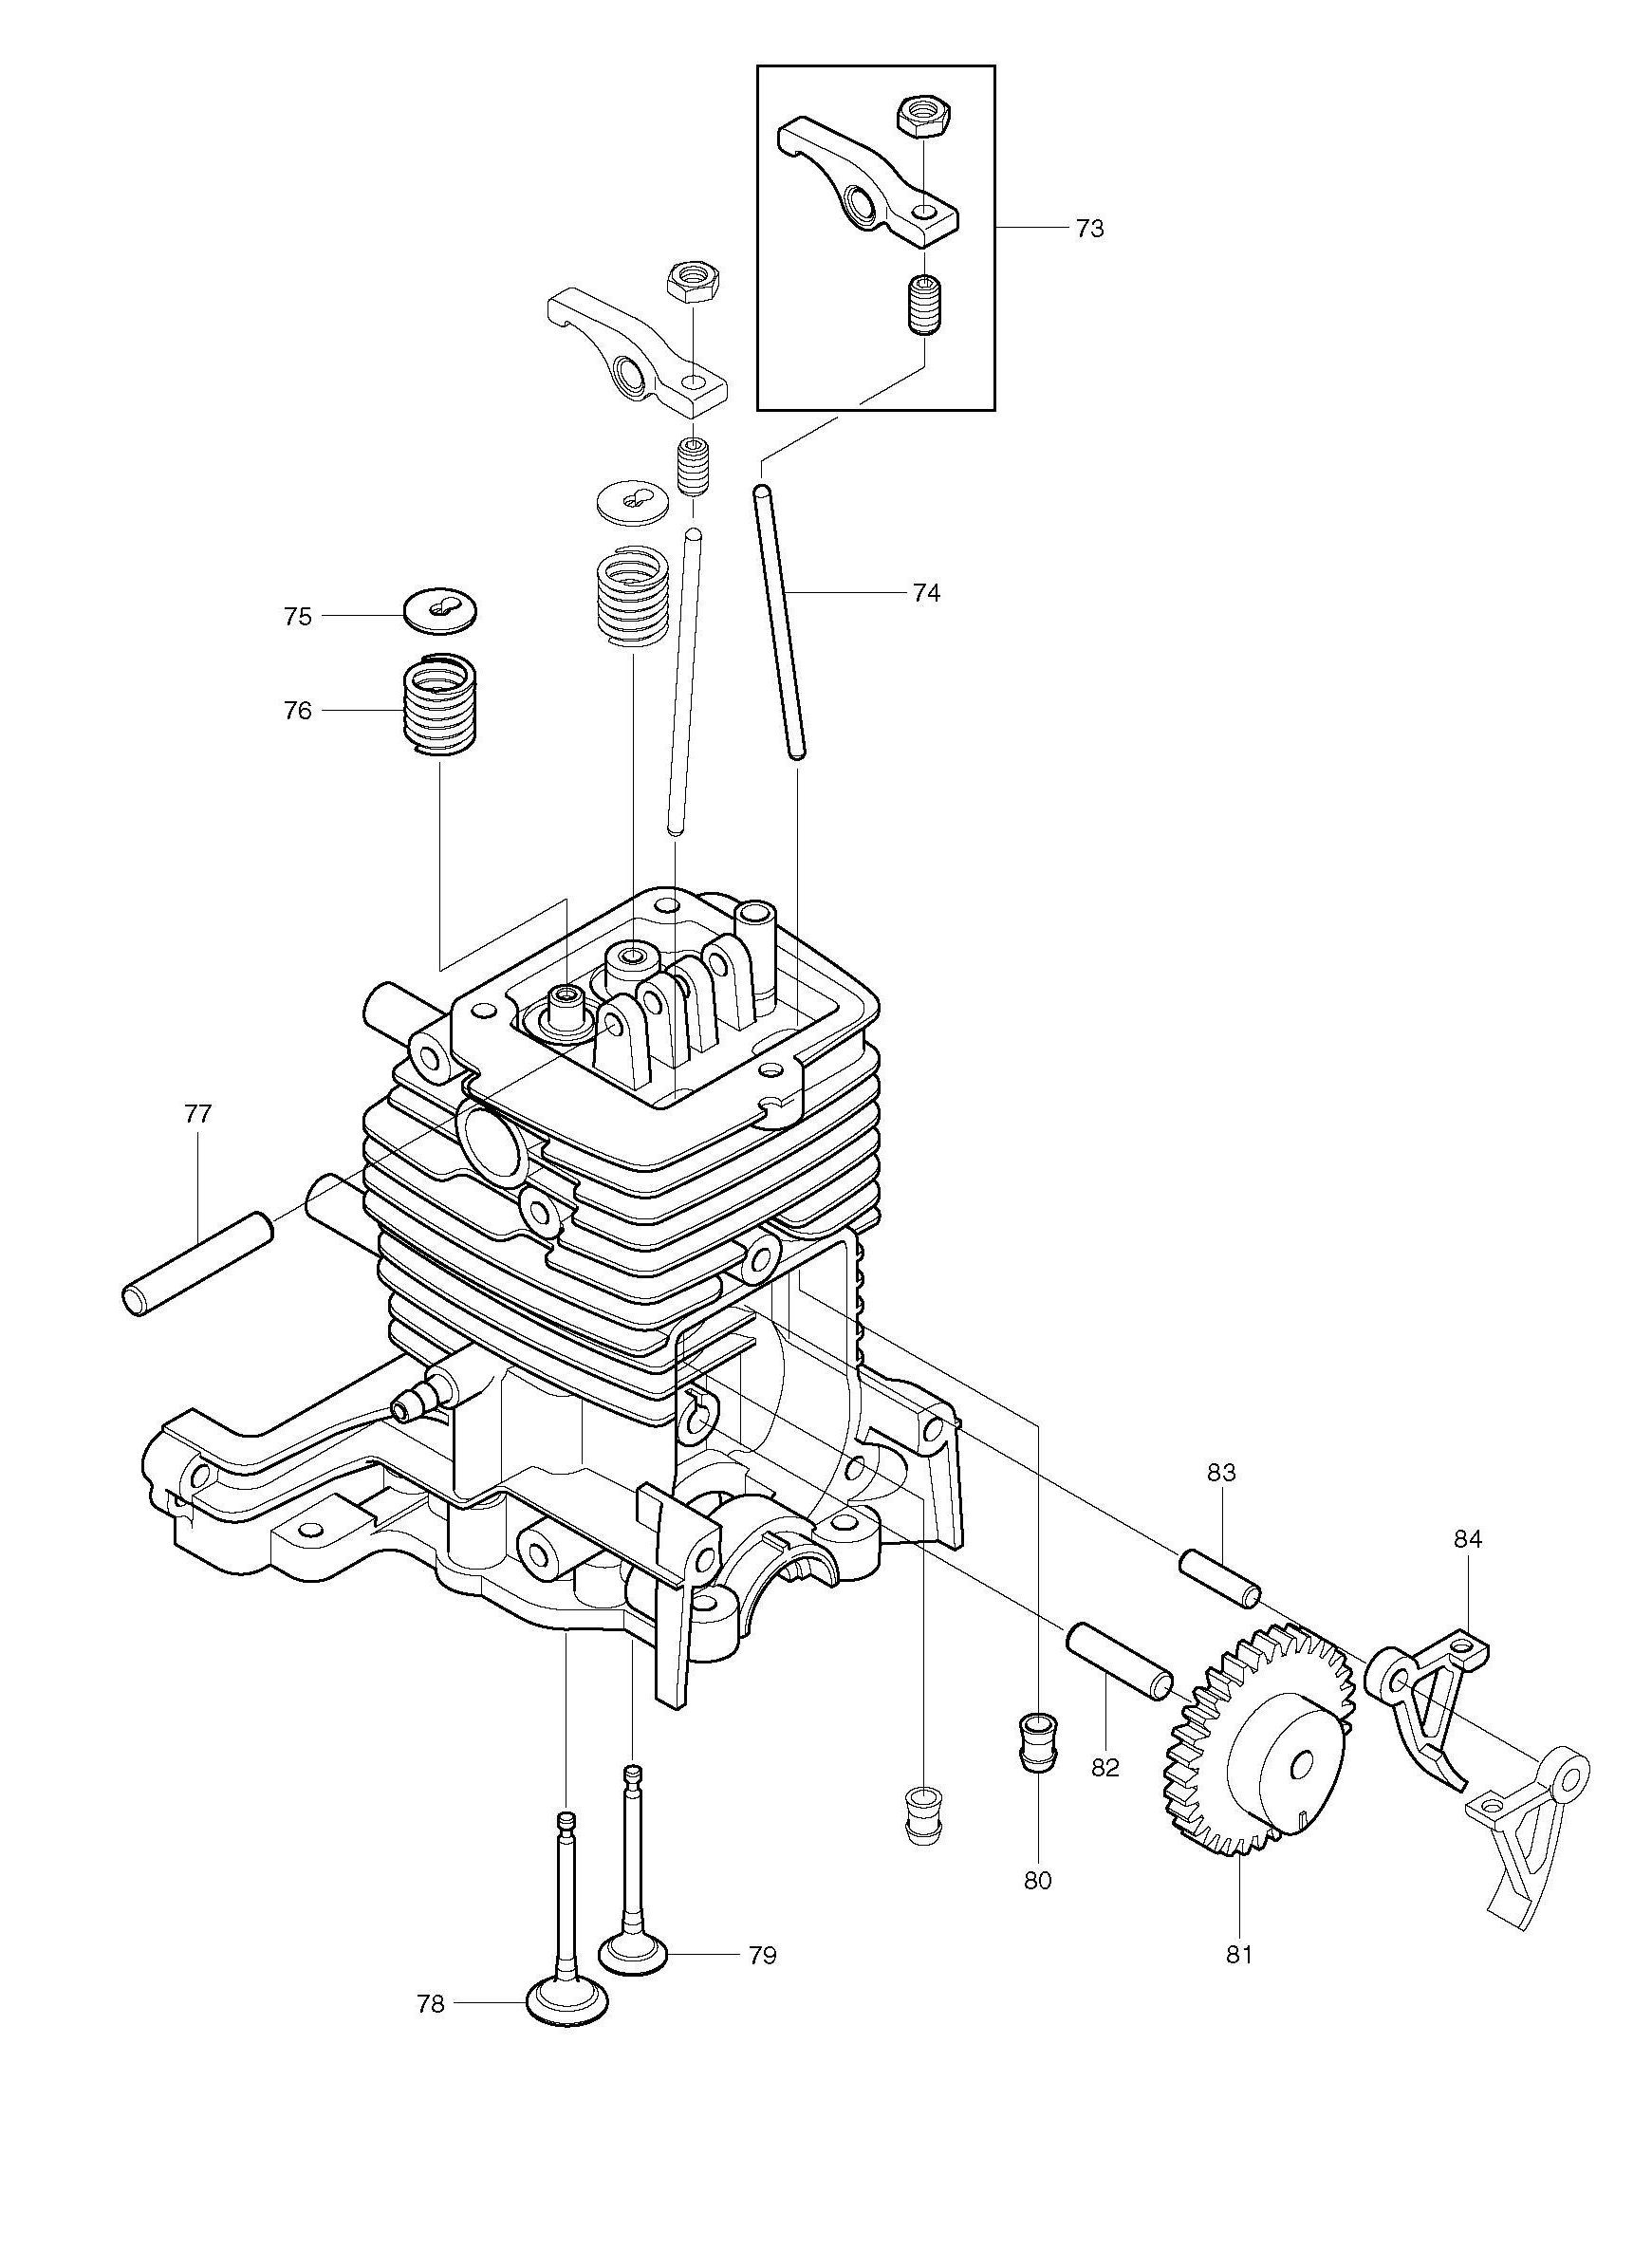 4stroke Engine Diagram Spares for Makita Bhx2500 4 Stroke Petrol Blower Spare Bhx2500 From Of 4stroke Engine Diagram